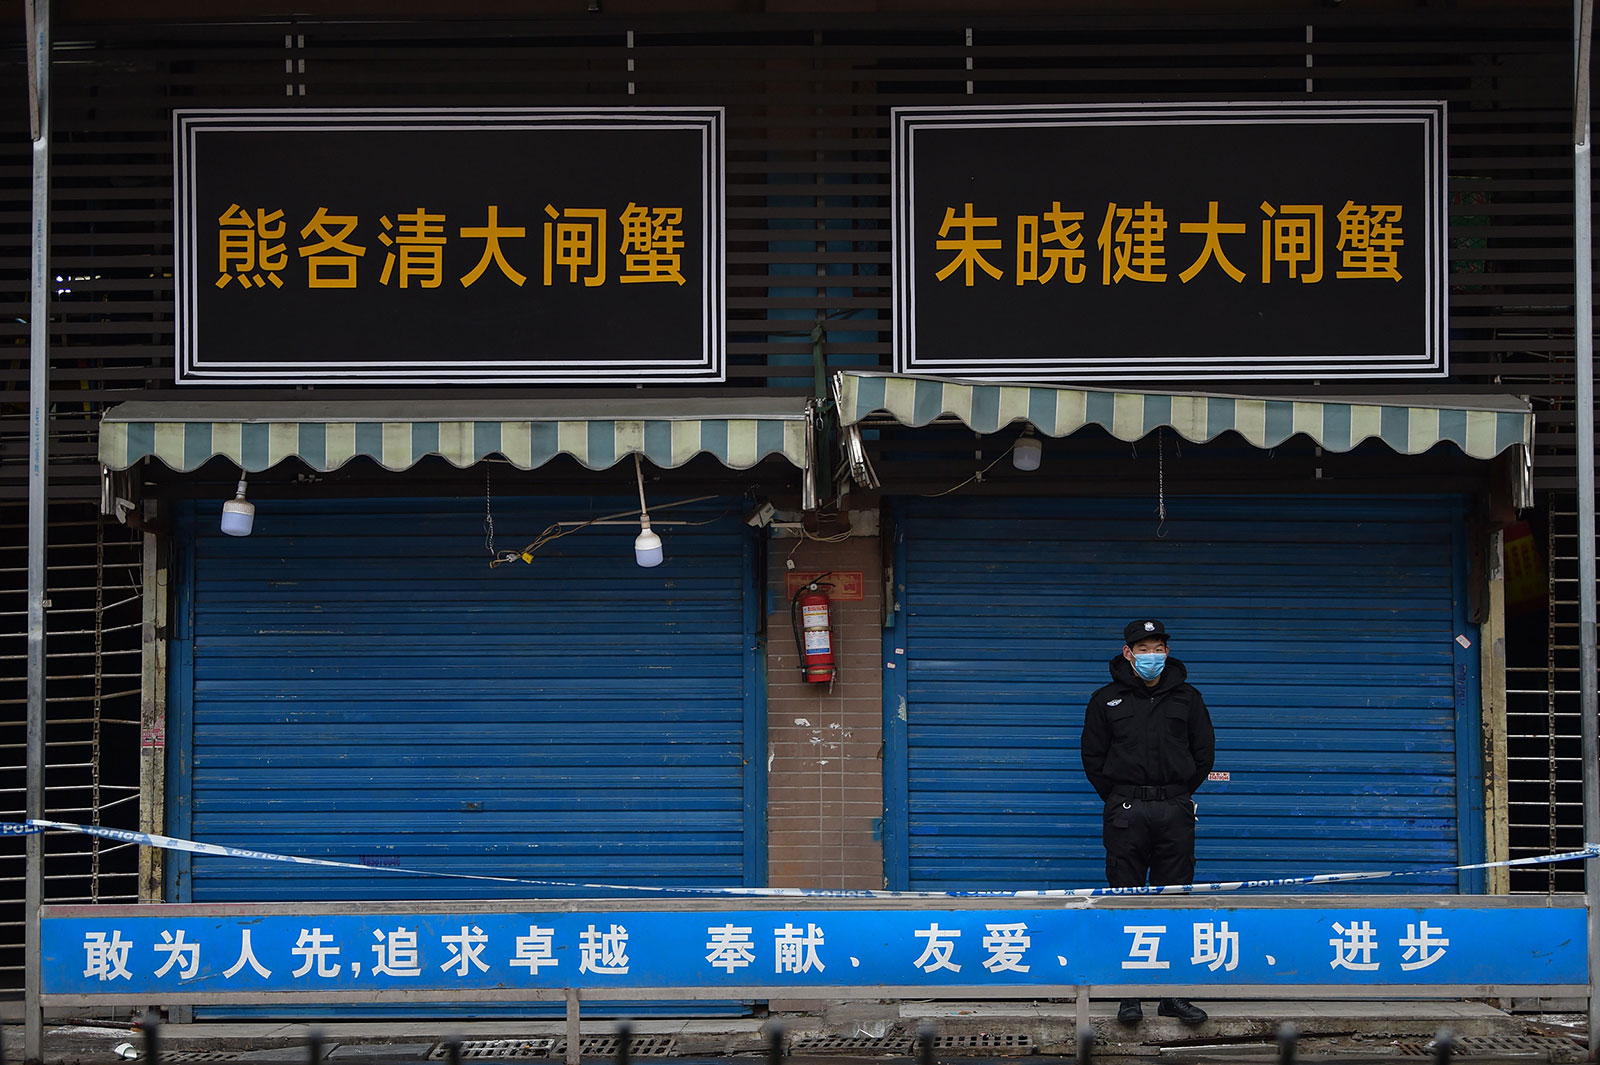 A security guard stands outside the Huanan Seafood Wholesale Market in Wuhan, China, on January 24.